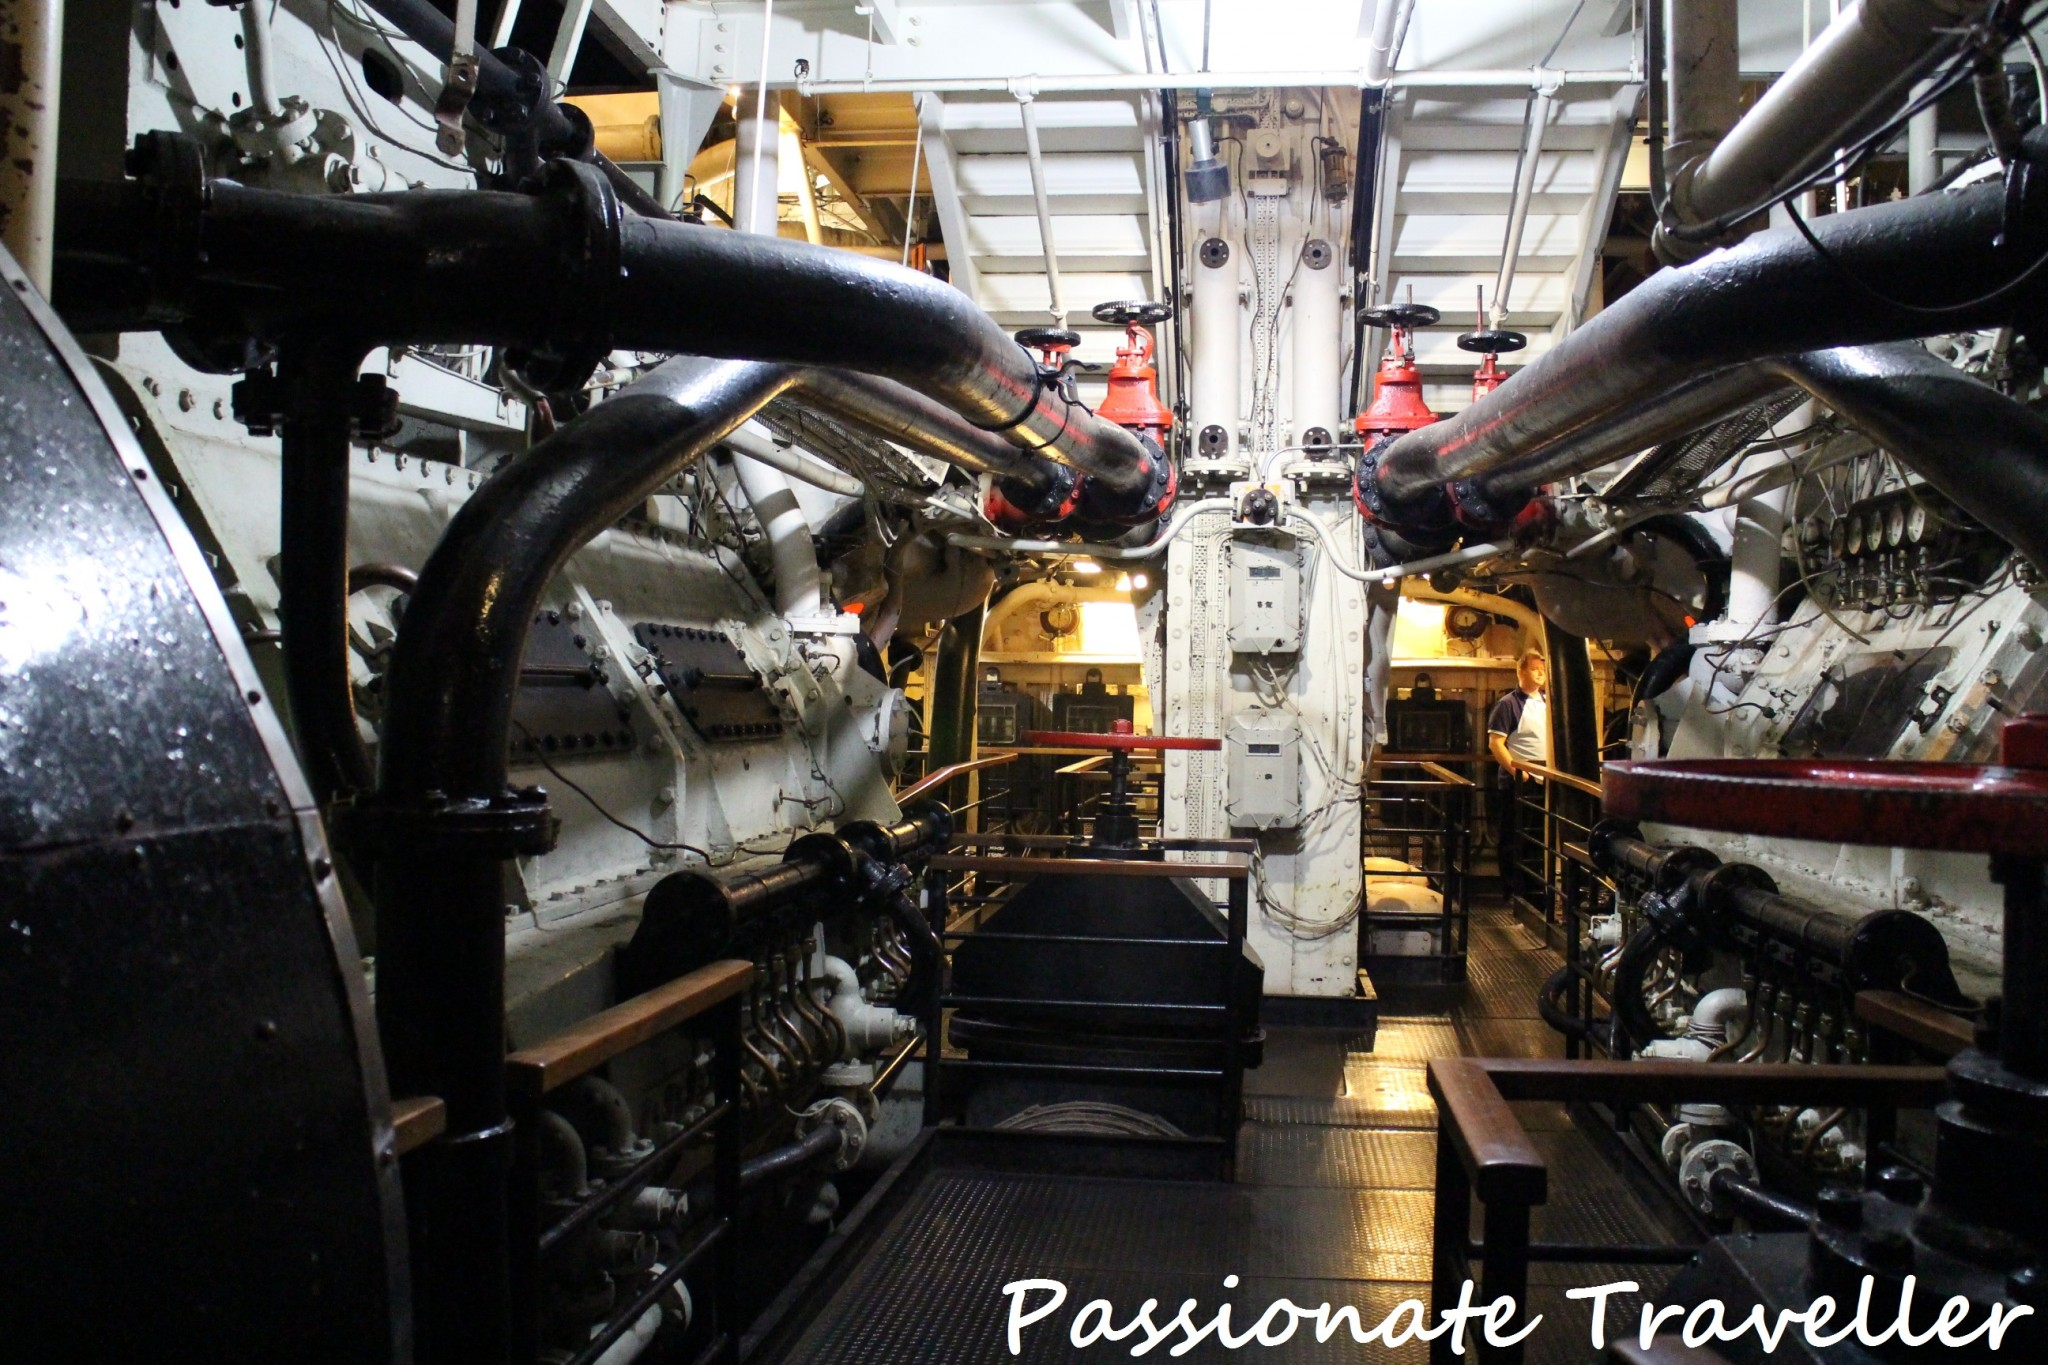 Queen Mary Engine Room 3